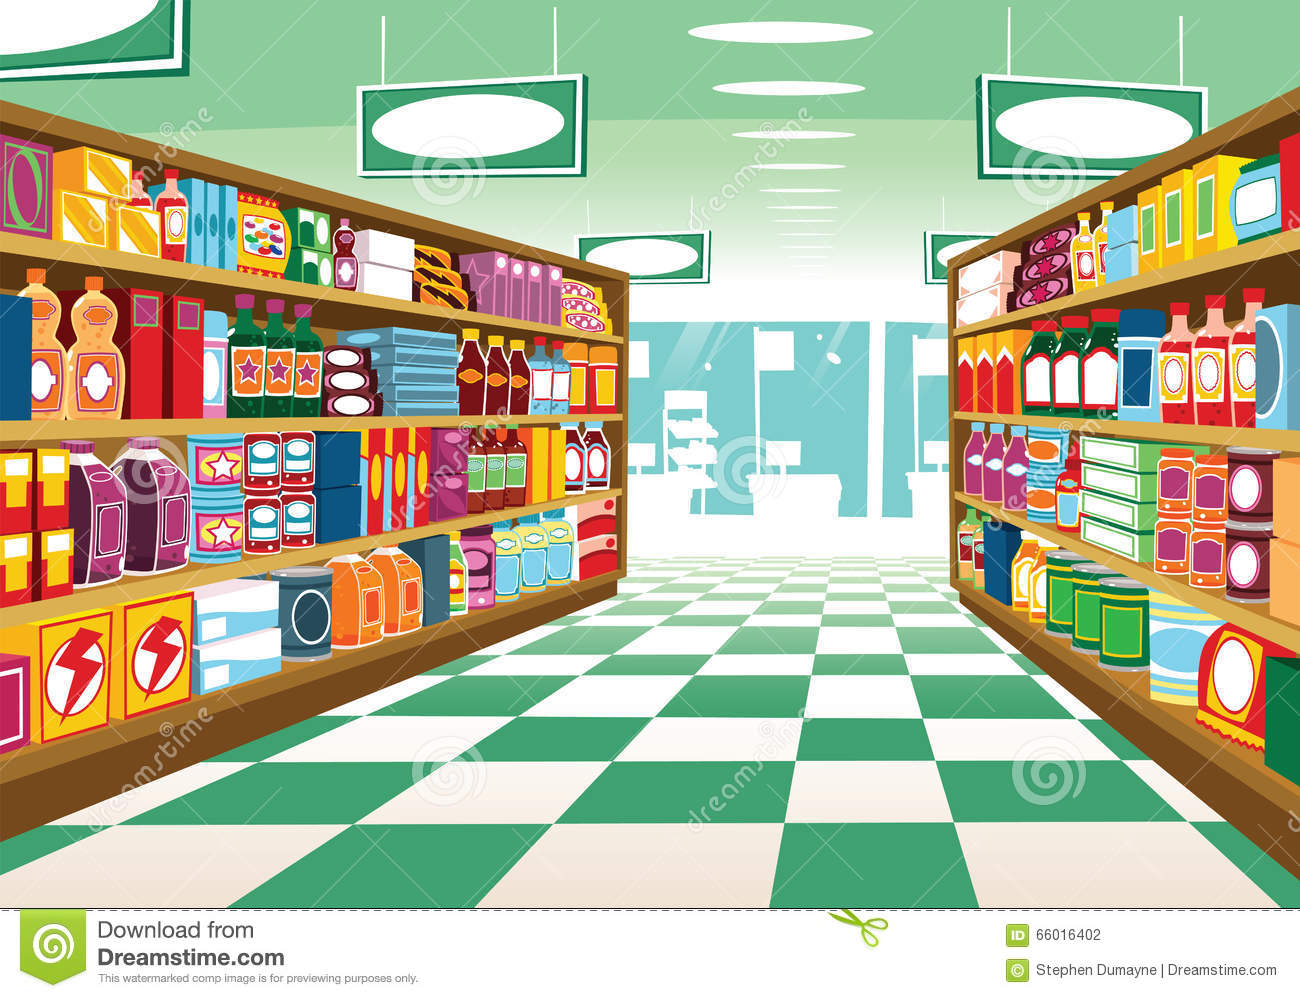 Clip Art Grocery Store Aisle